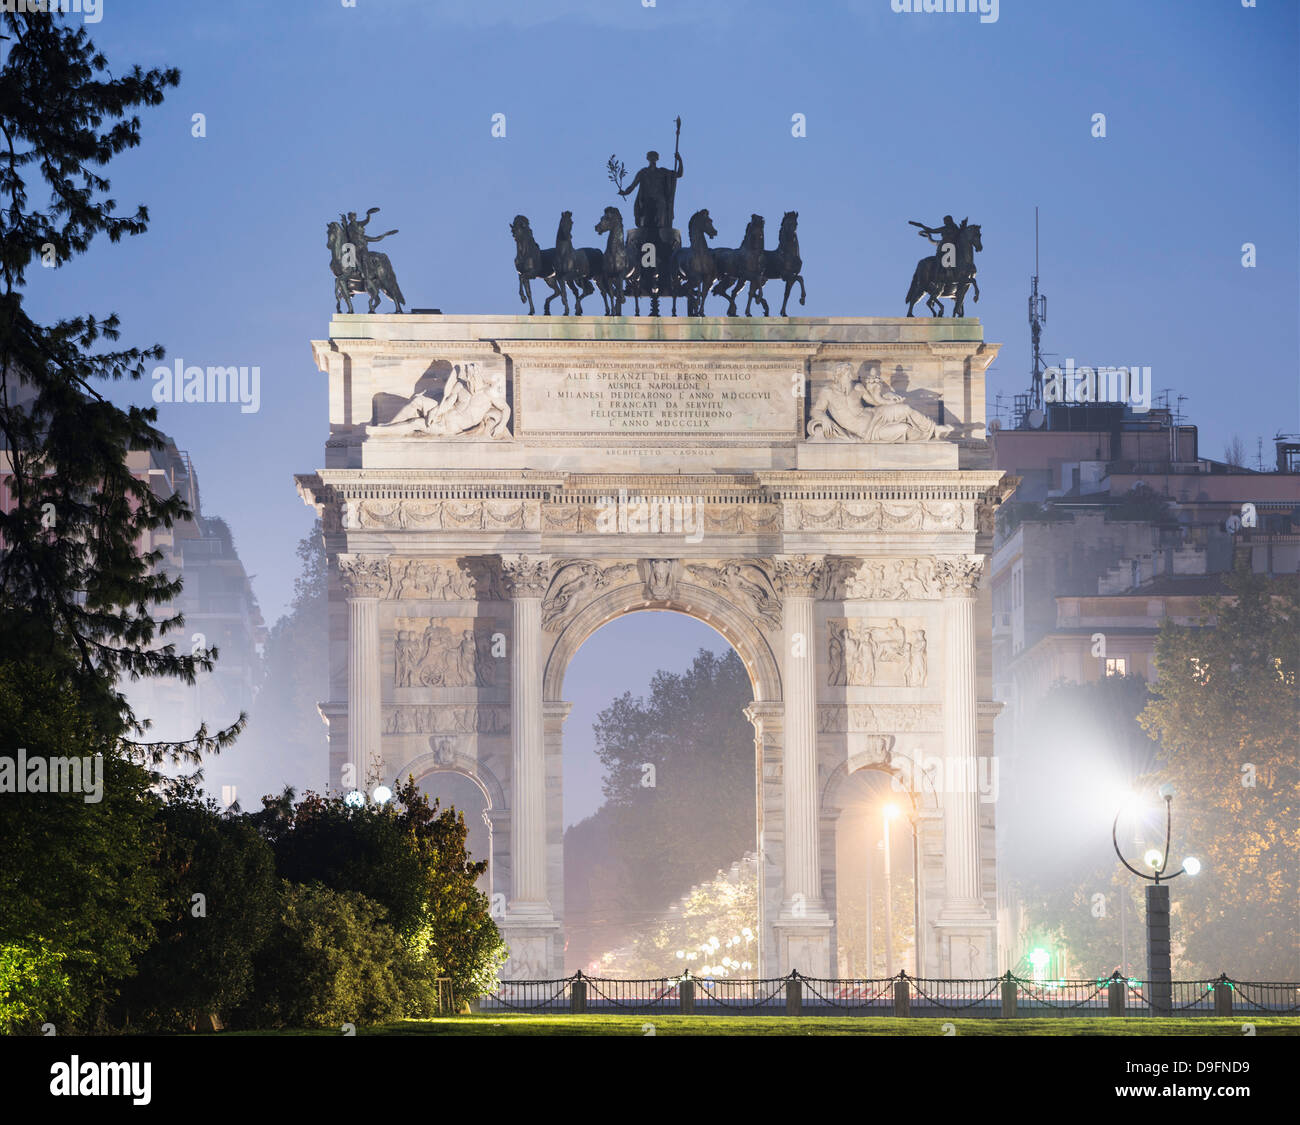 Arco della Pace, Milan, Lombardy, Italy - Stock Image